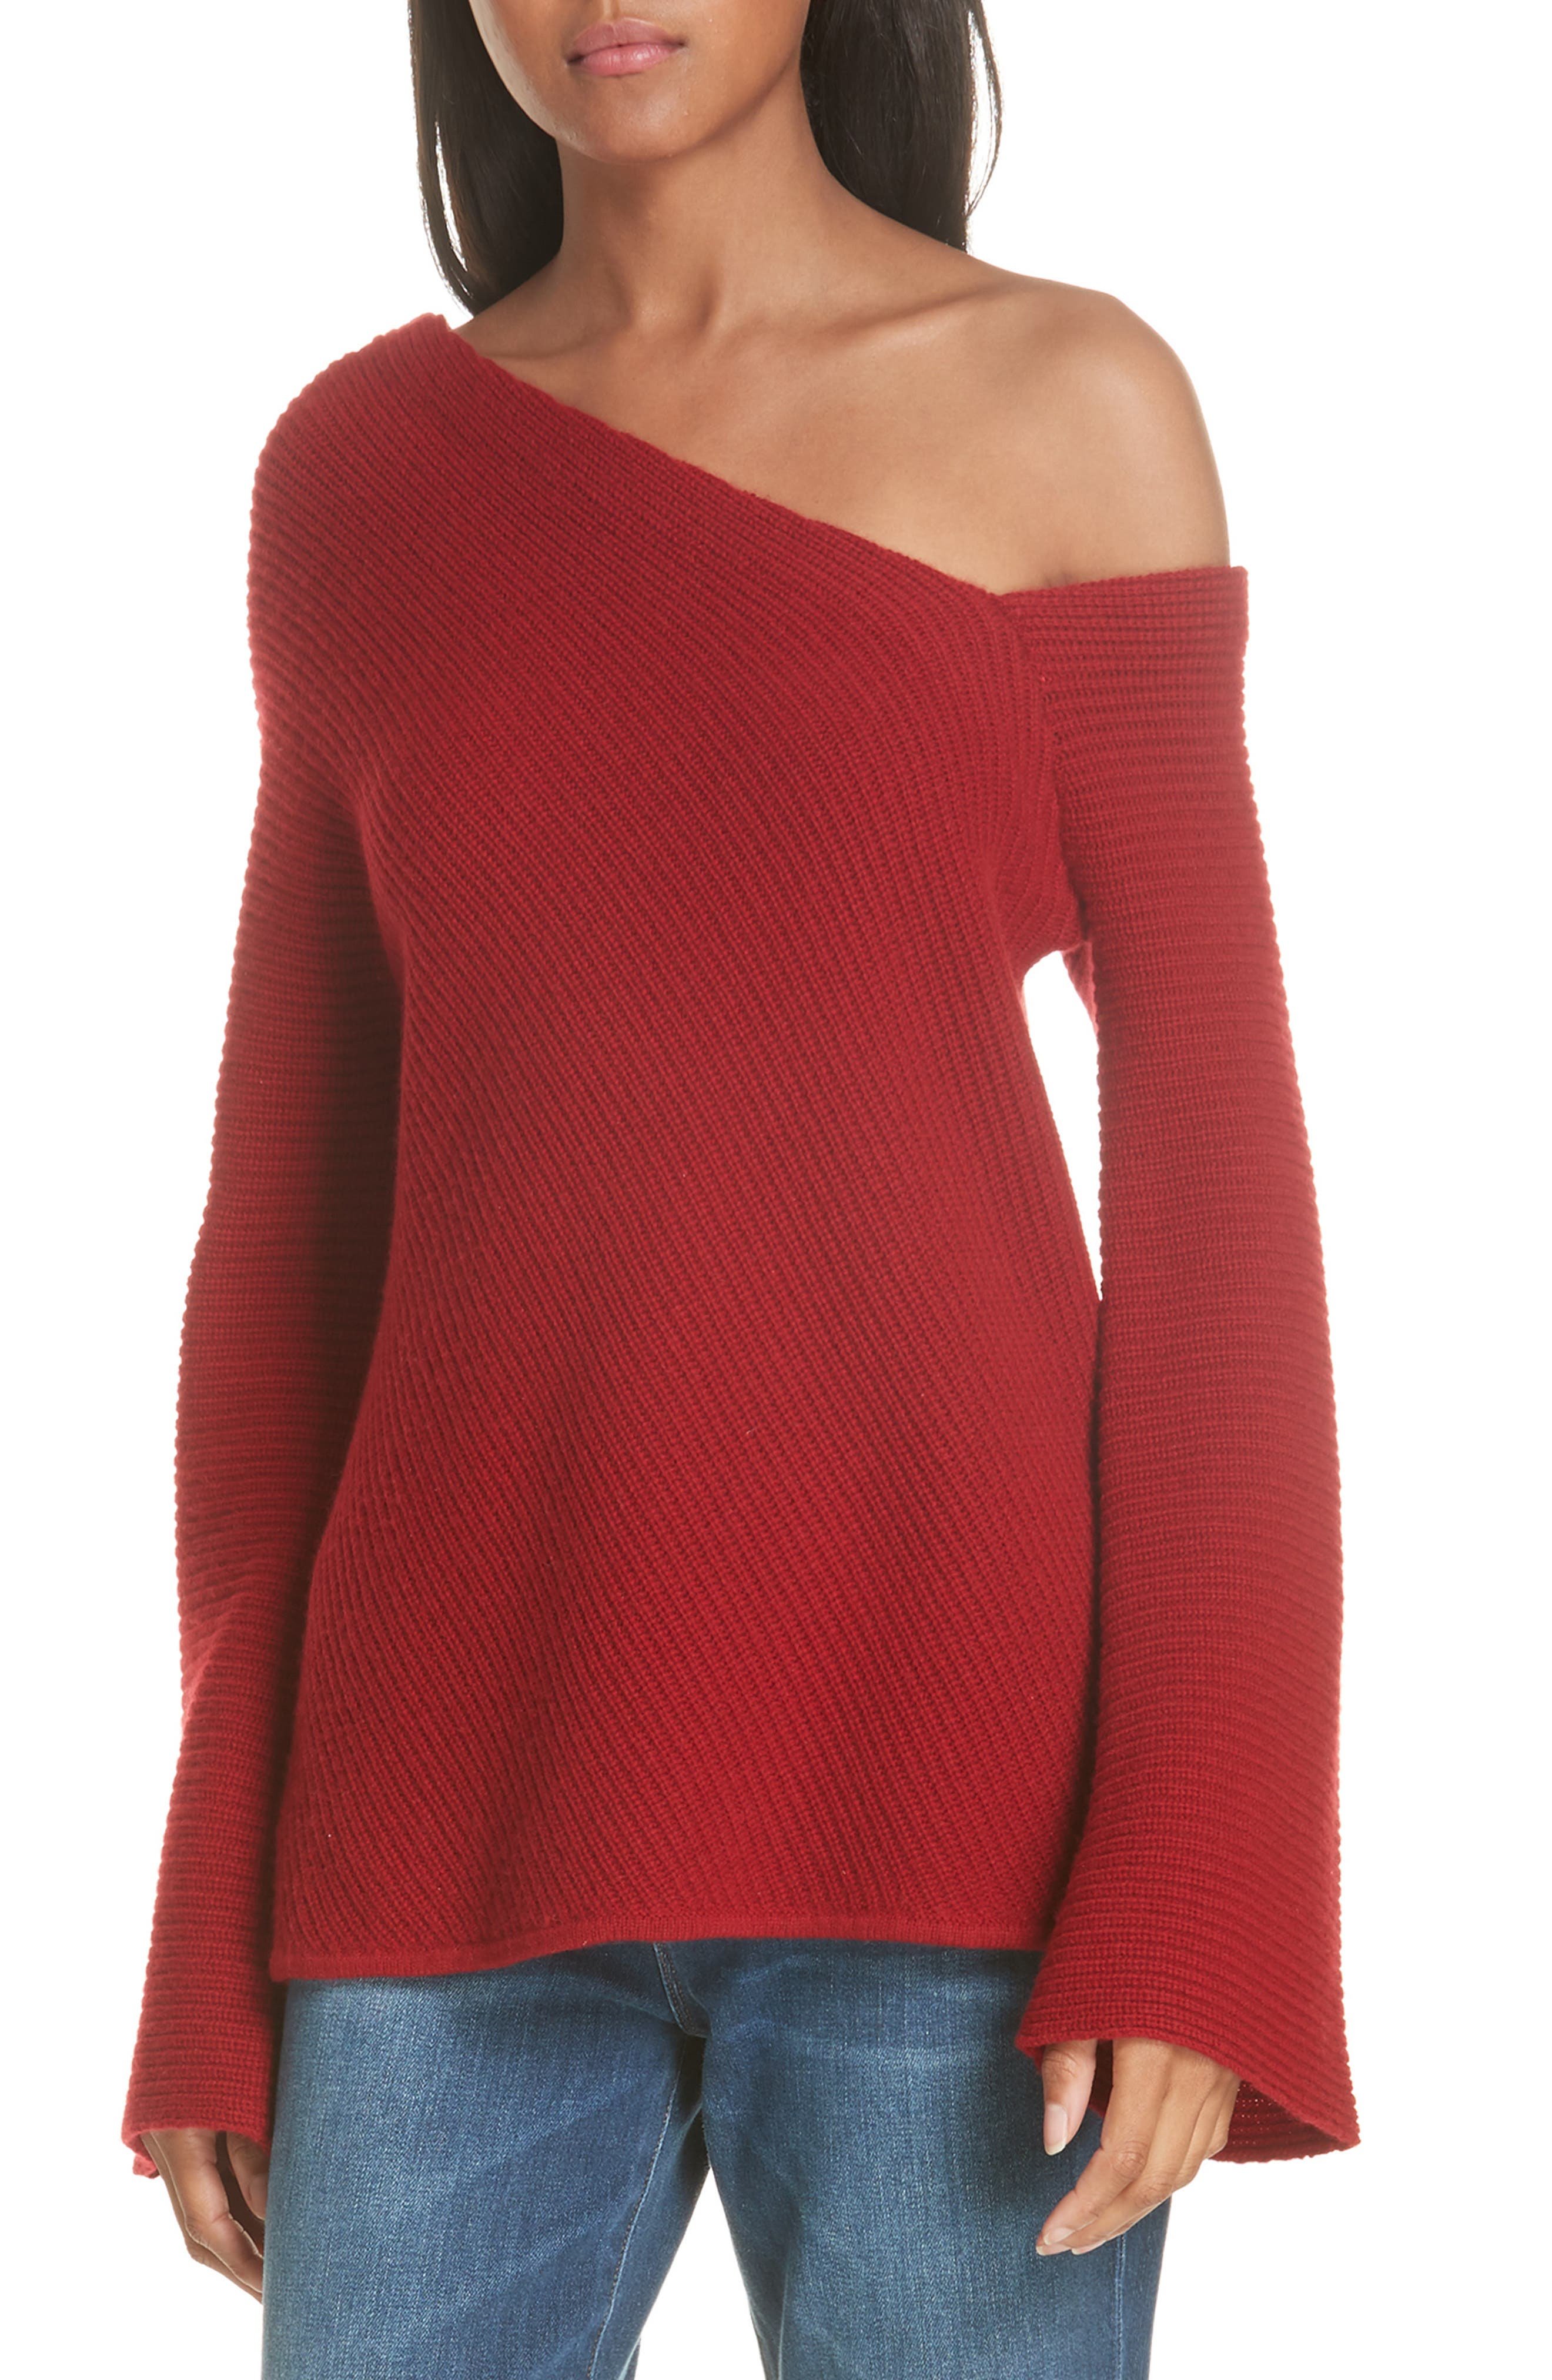 Charly Wool & Cashmere One-Shoulder Sweater,                             Main thumbnail 1, color,                             RED